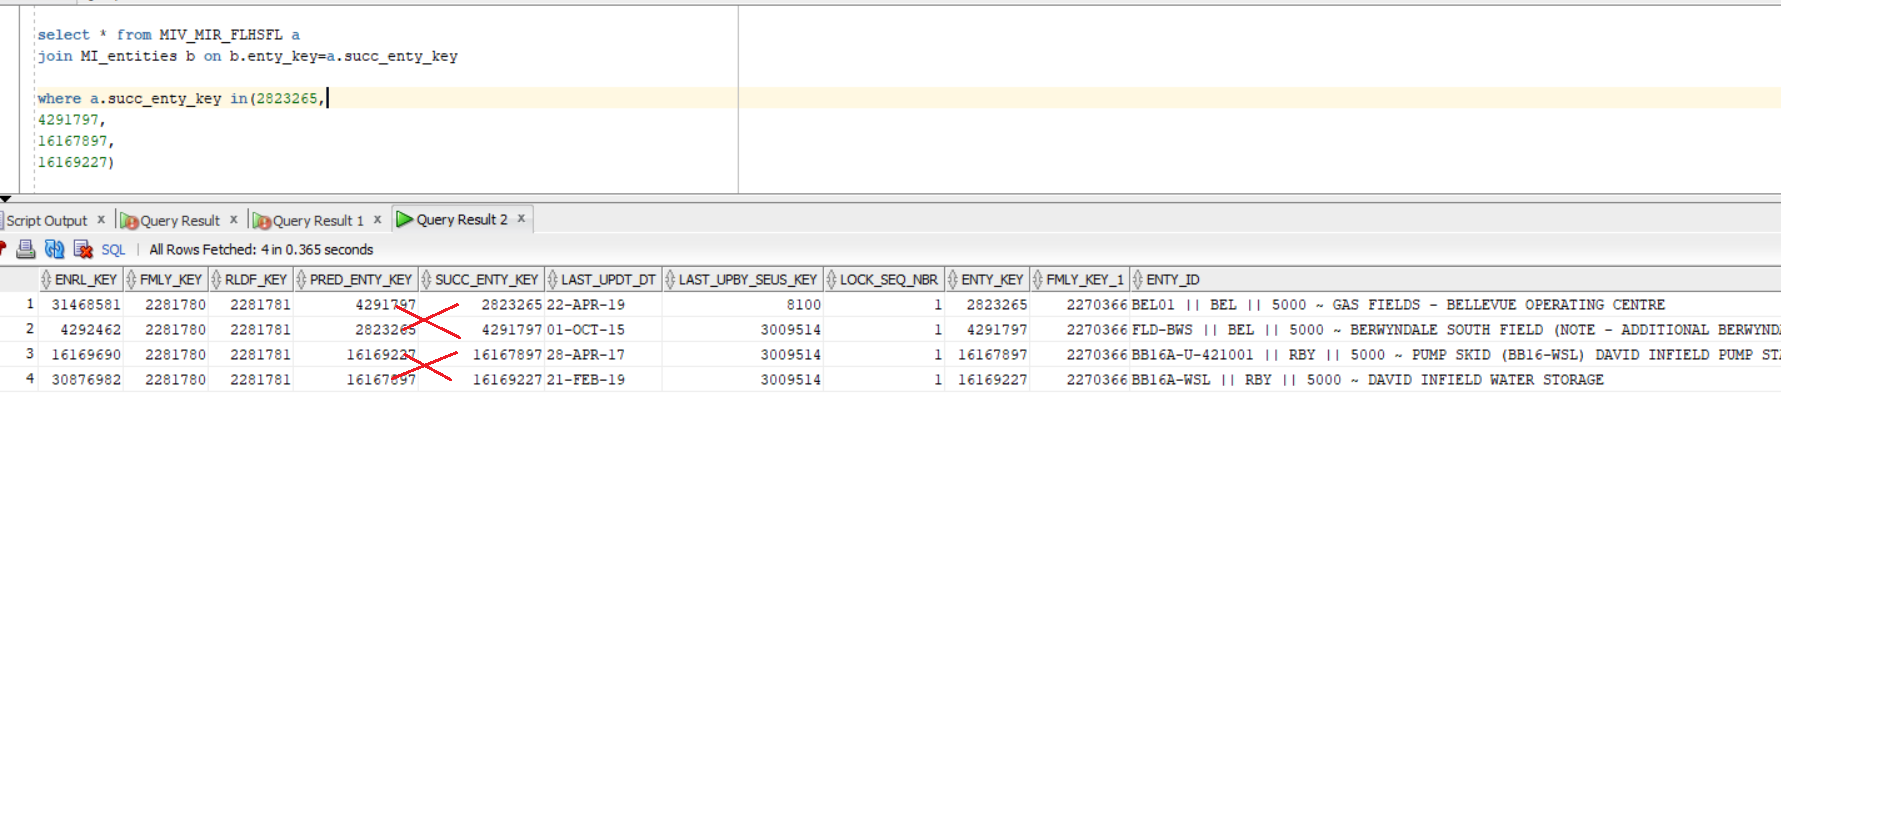 Asset Hierarchy Rebuild fails with error 'ORA-32044: cycle detected